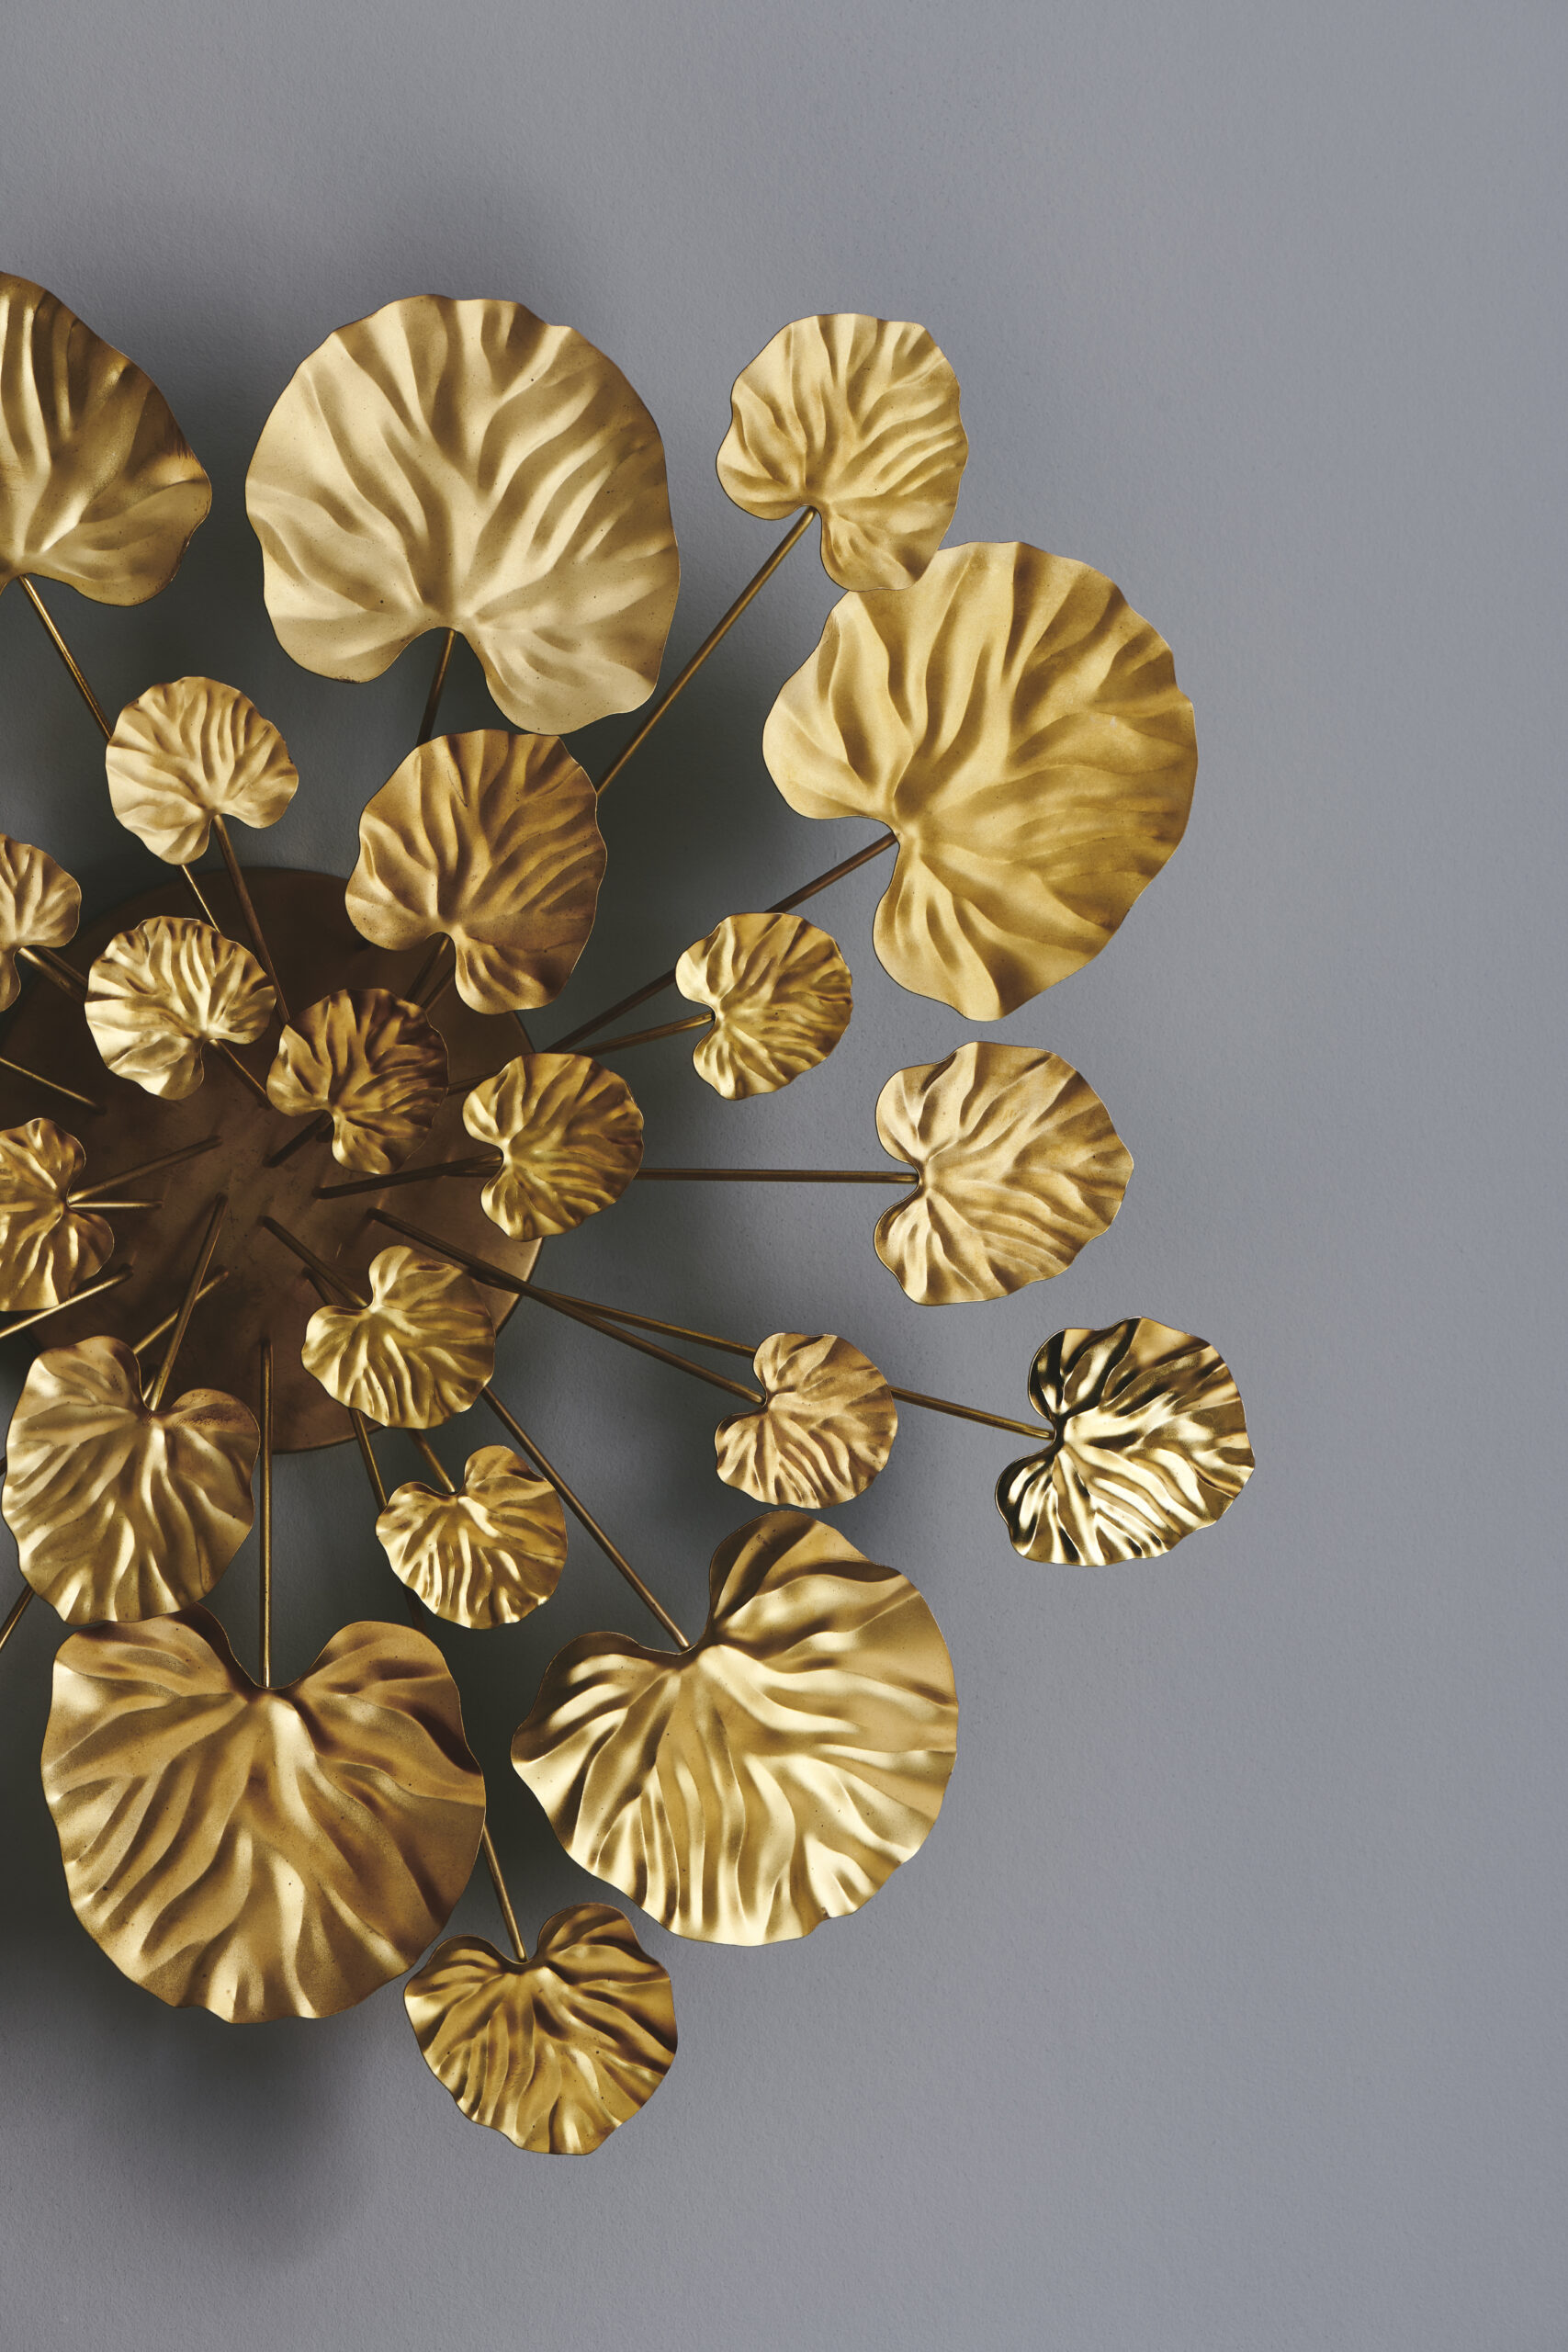 Stylin gof large brass wall flower